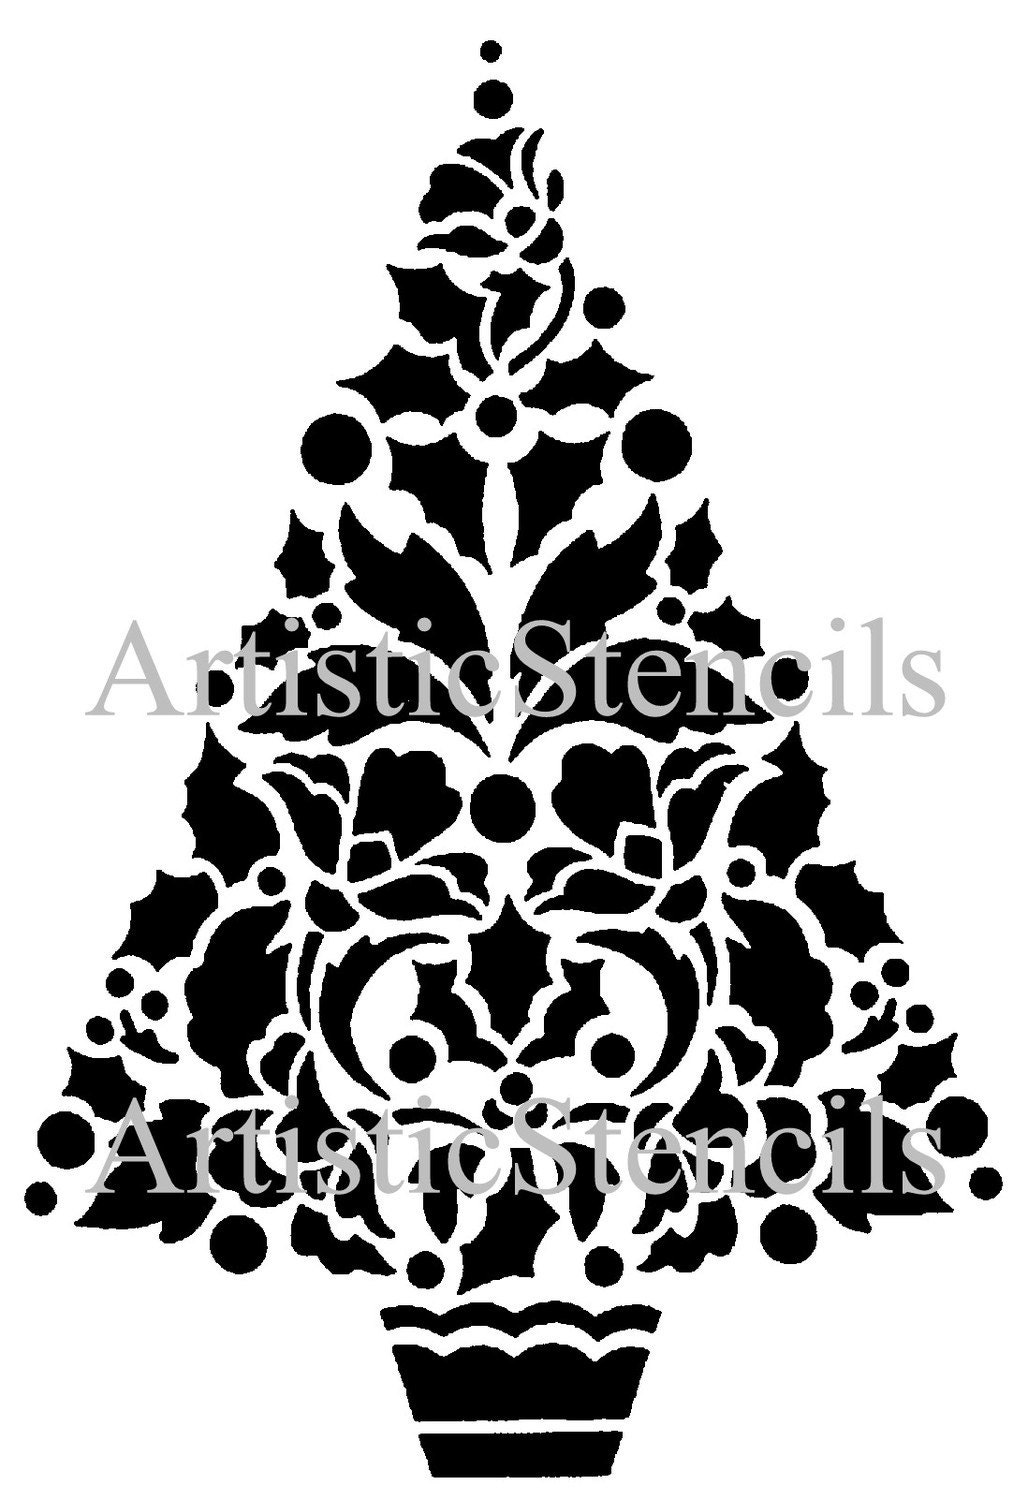 This is an image of Comprehensive Merry Christmas Stencil Free Printable